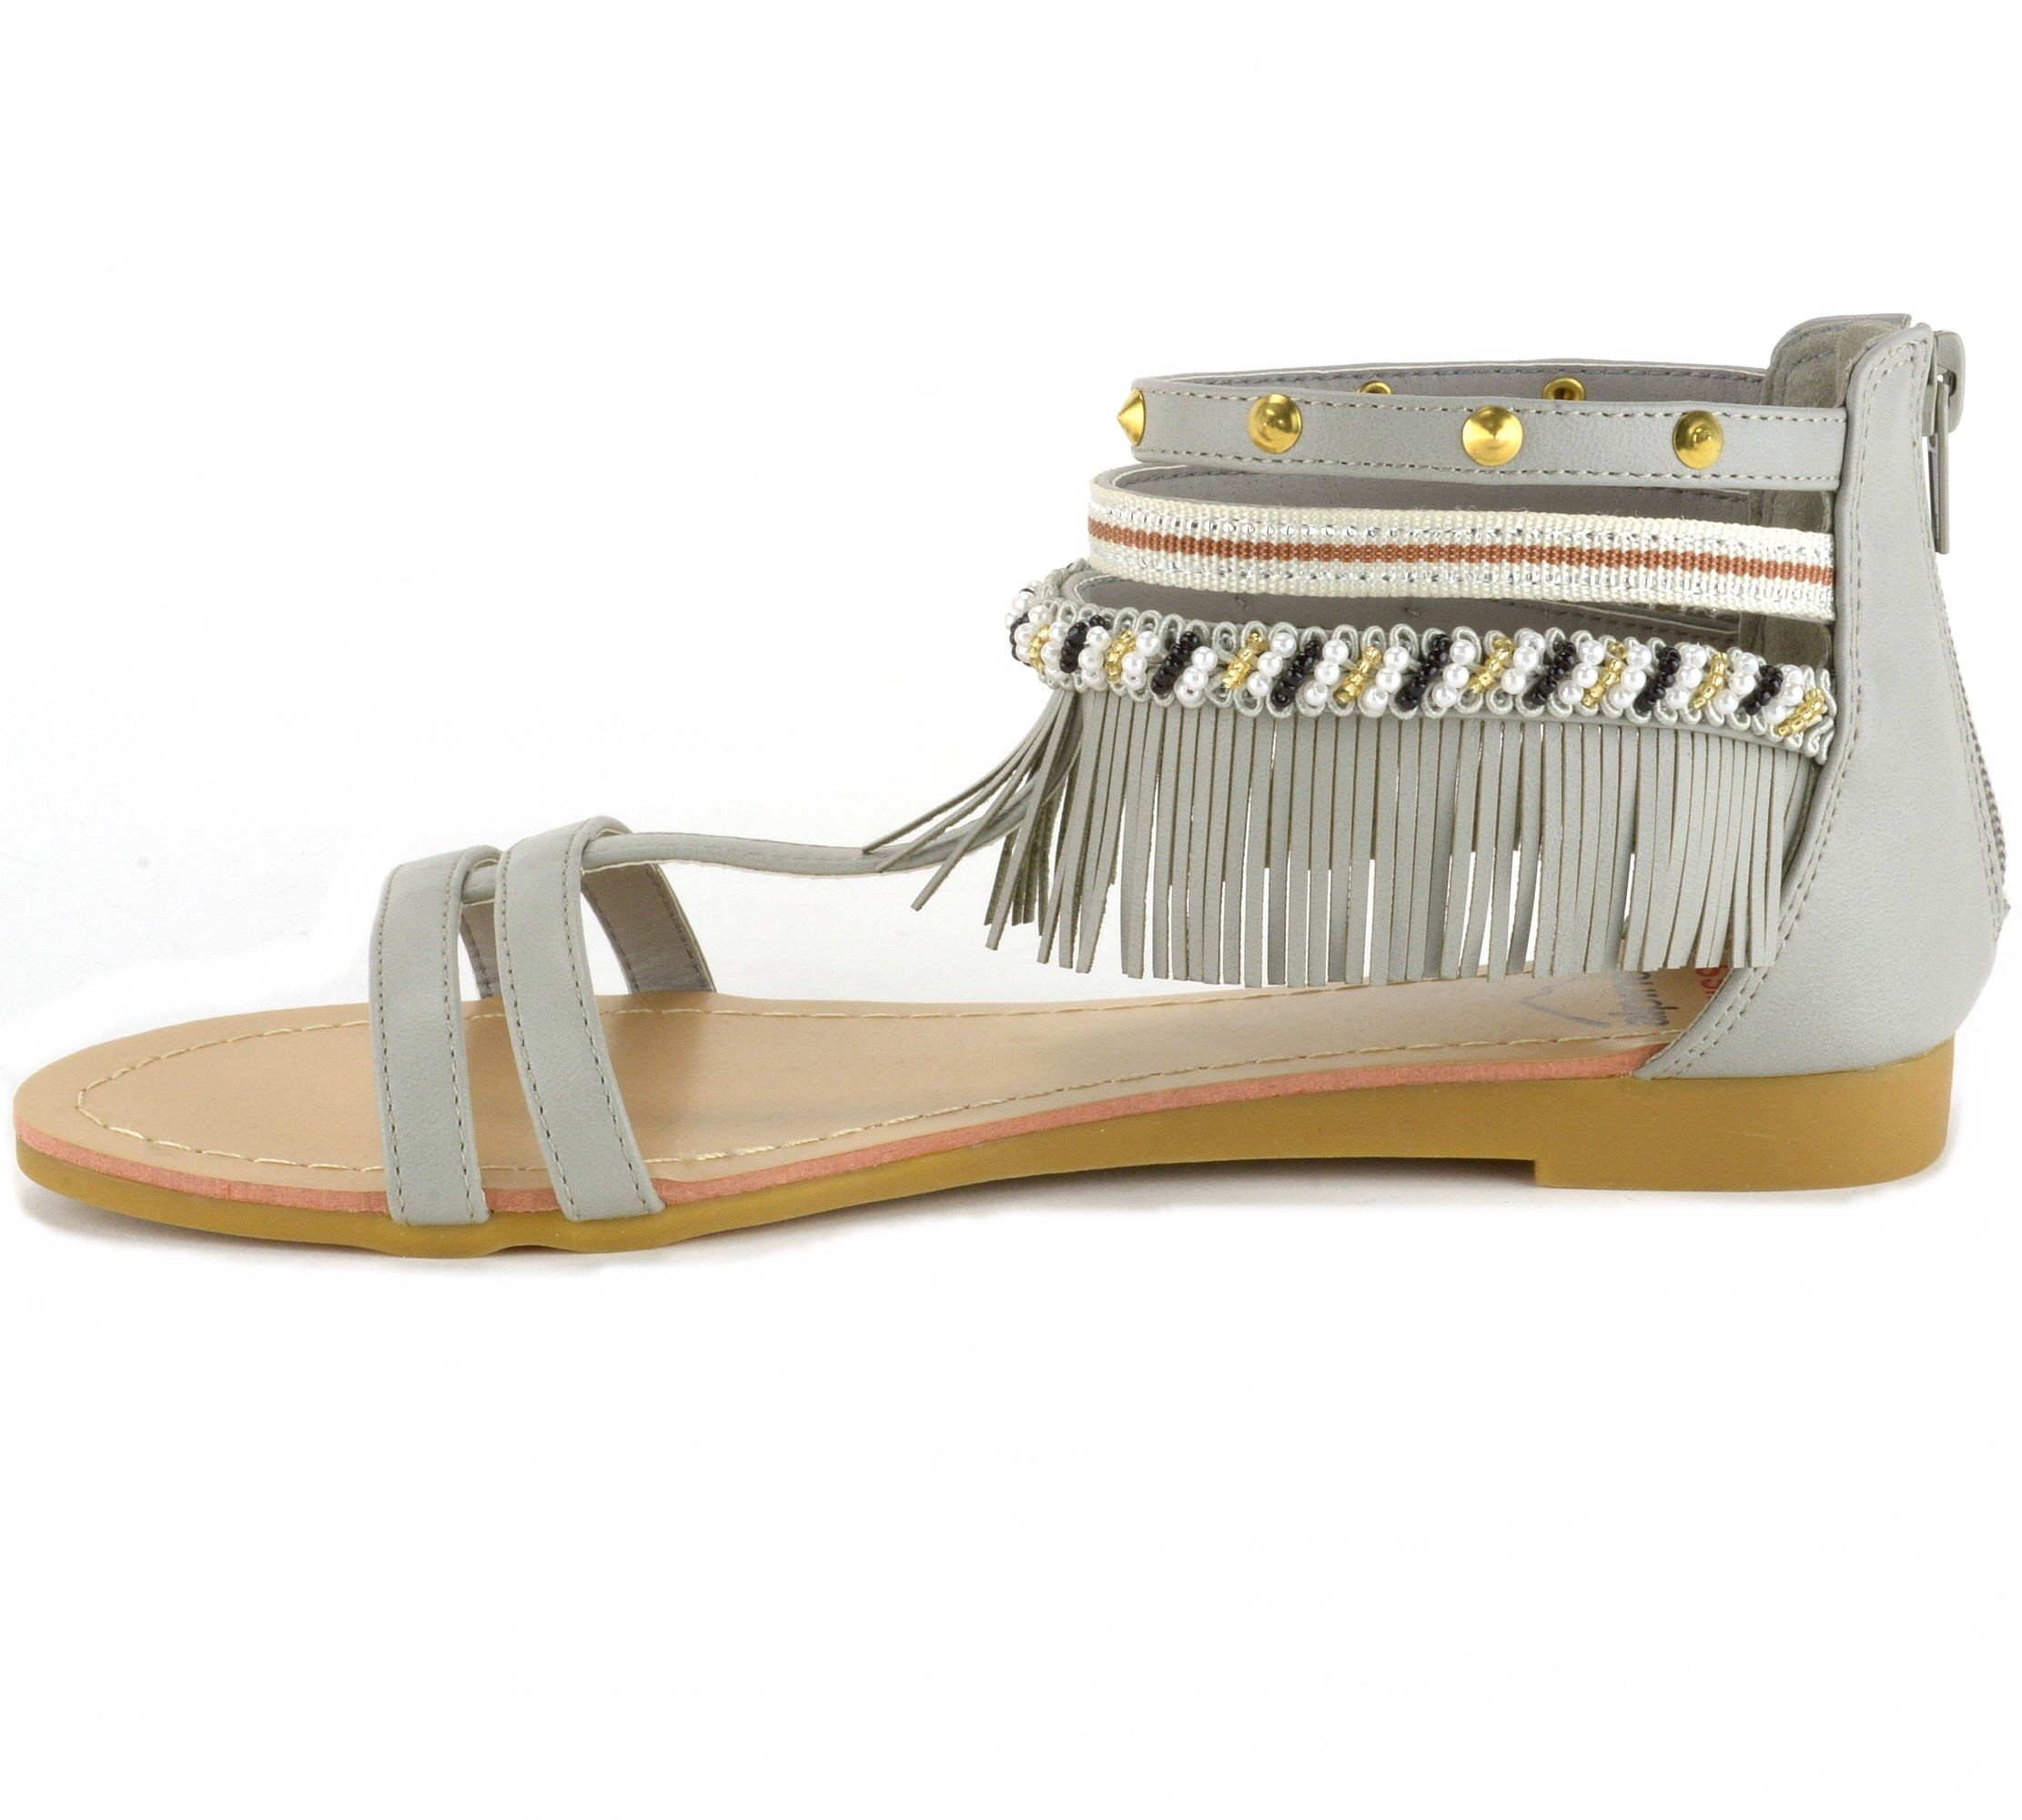 Alpine-Swiss-Womens-Fringe-Sandals-Beaded-amp-Studded-Strappy-Gladiator-Ankle-Flat